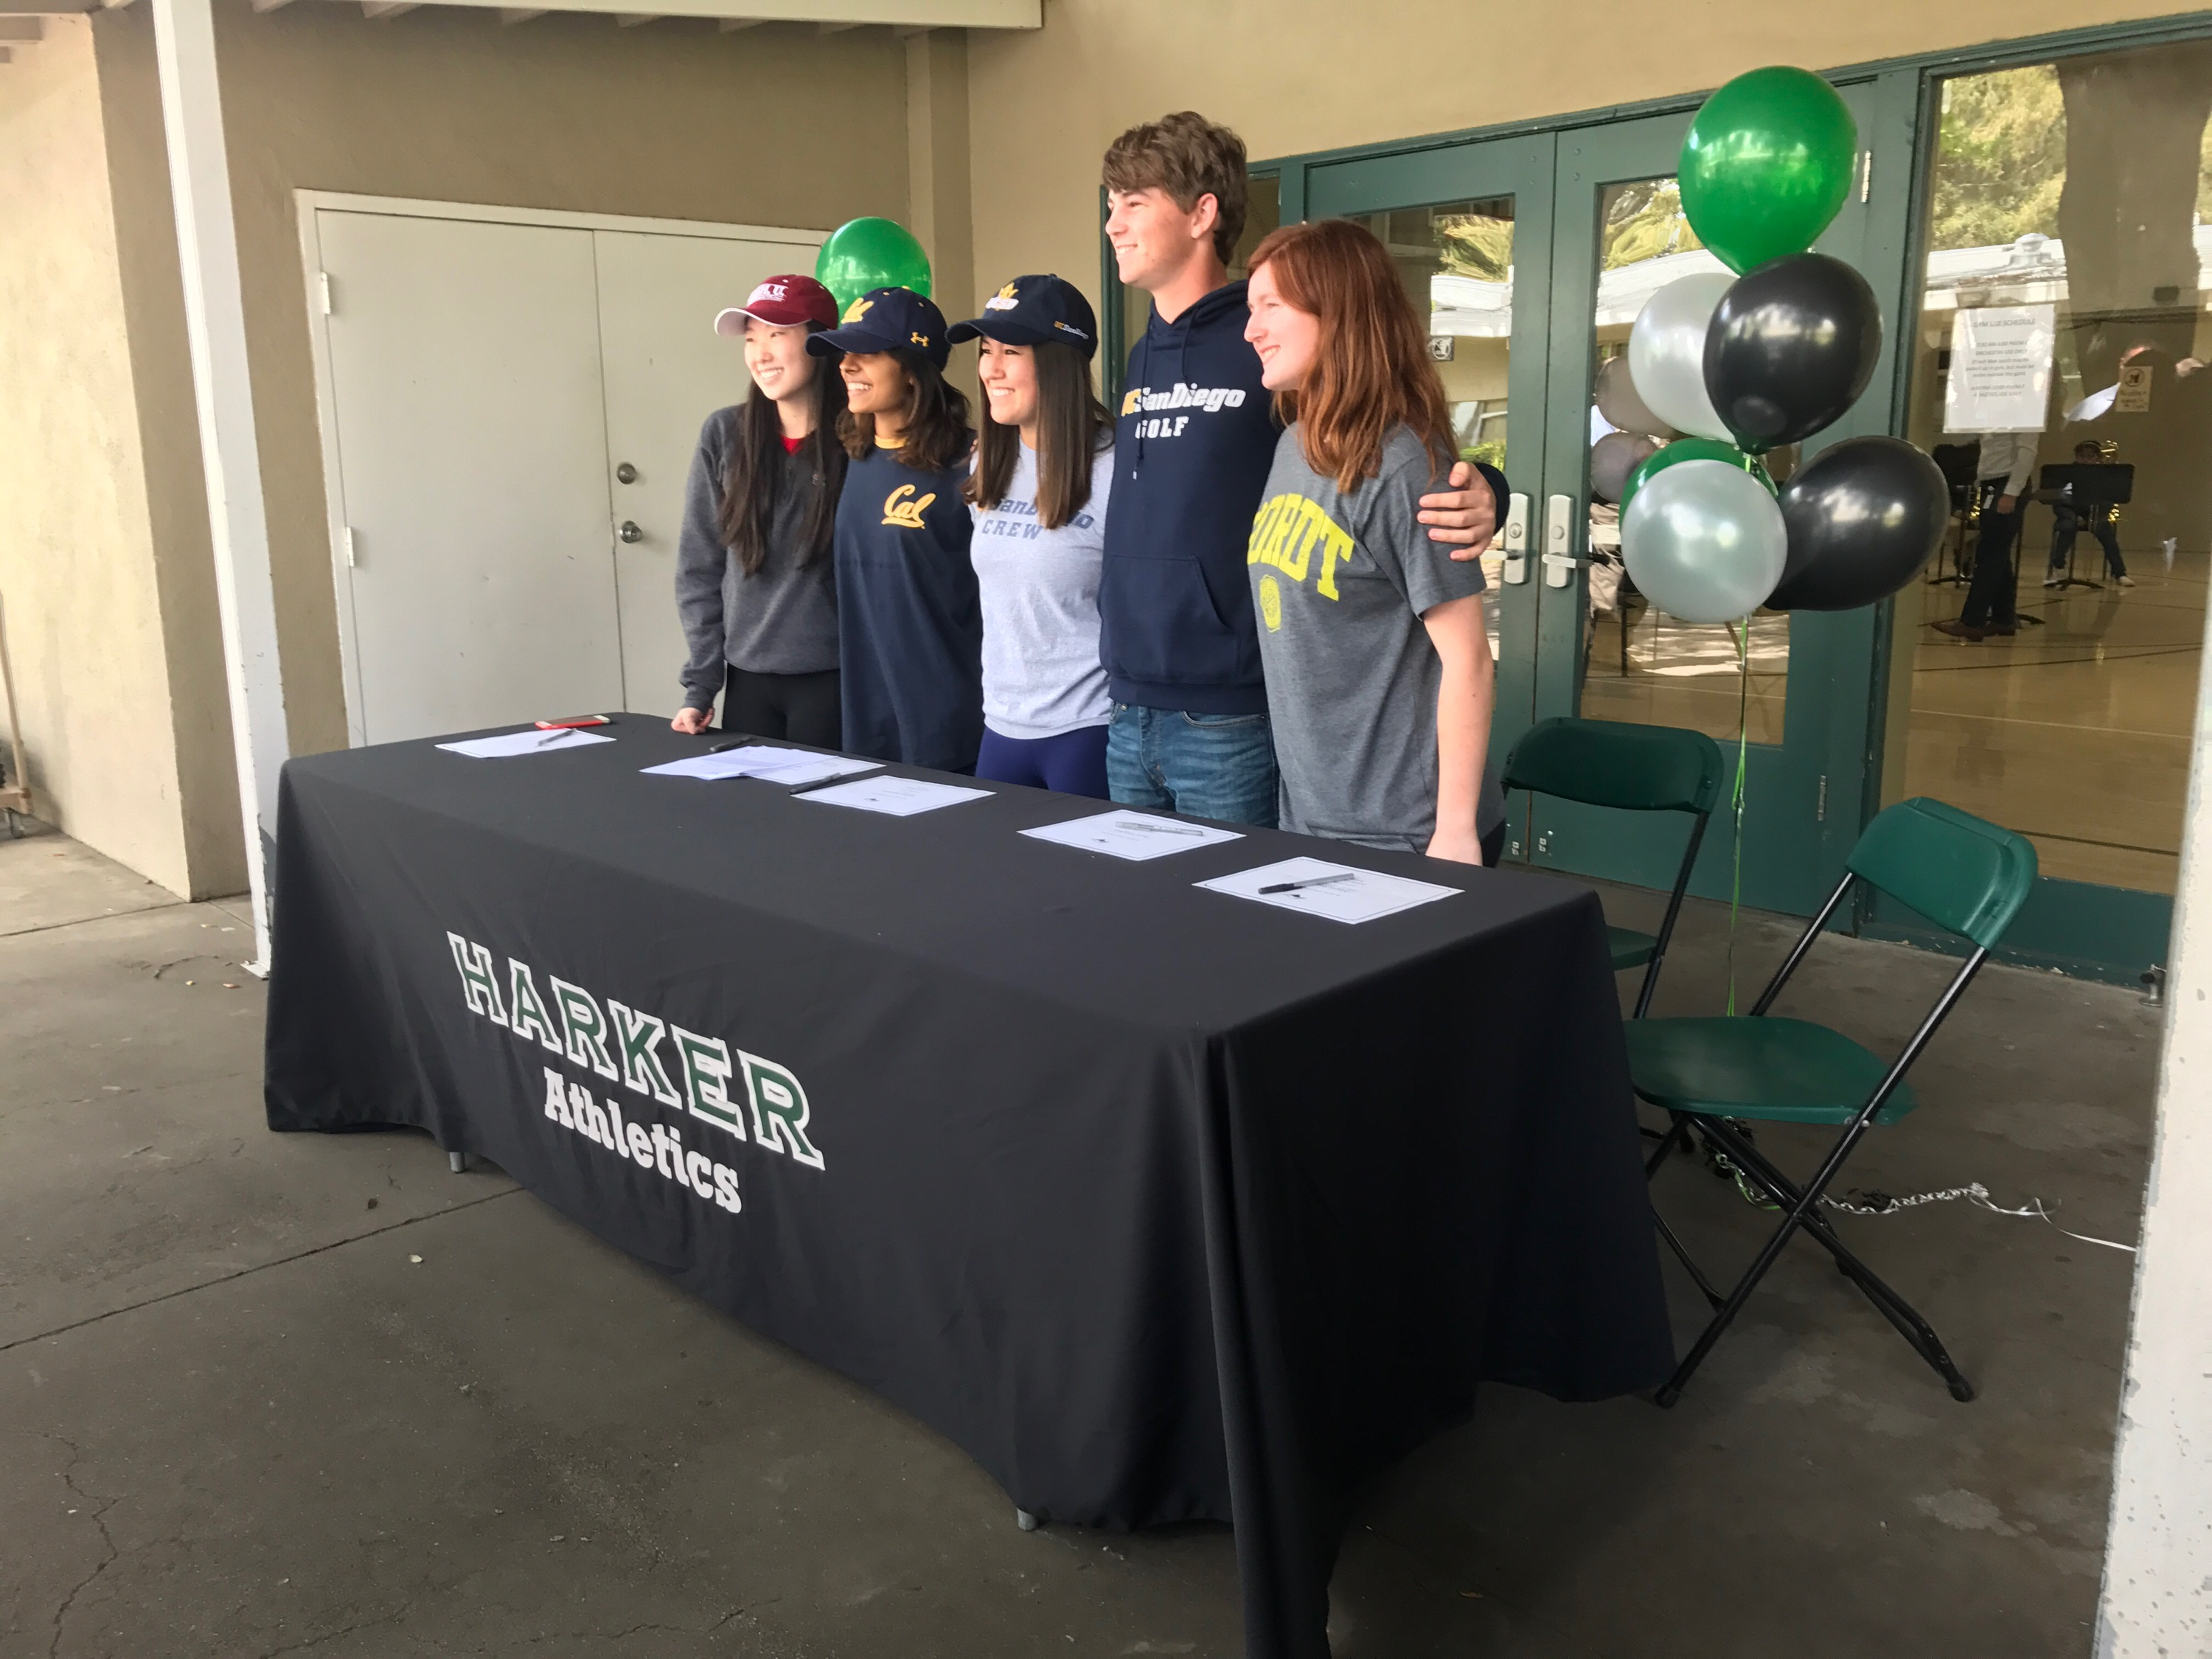 Seniors Rachel Cheng, Niki Iyer, Taylor Iantosca, Ryan Vaughan, and Marti Sutton pose for a photo. These five seniors signed for their respective college athletics programs today.